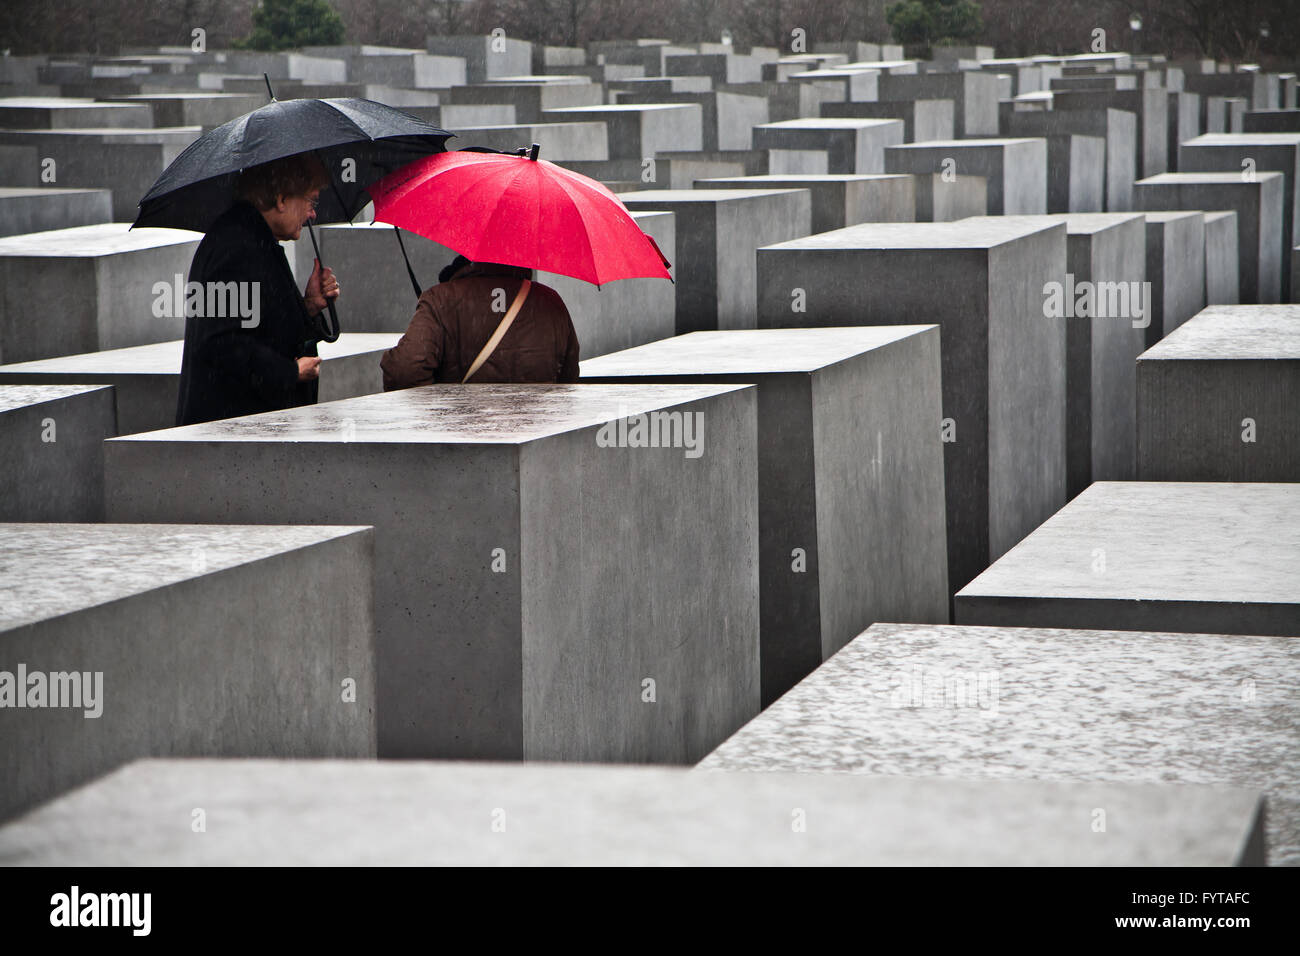 Couple sheltering under black and red umbrellas at the Memorial to the murdered Jews of Europe in Berlin, Germany. - Stock Image